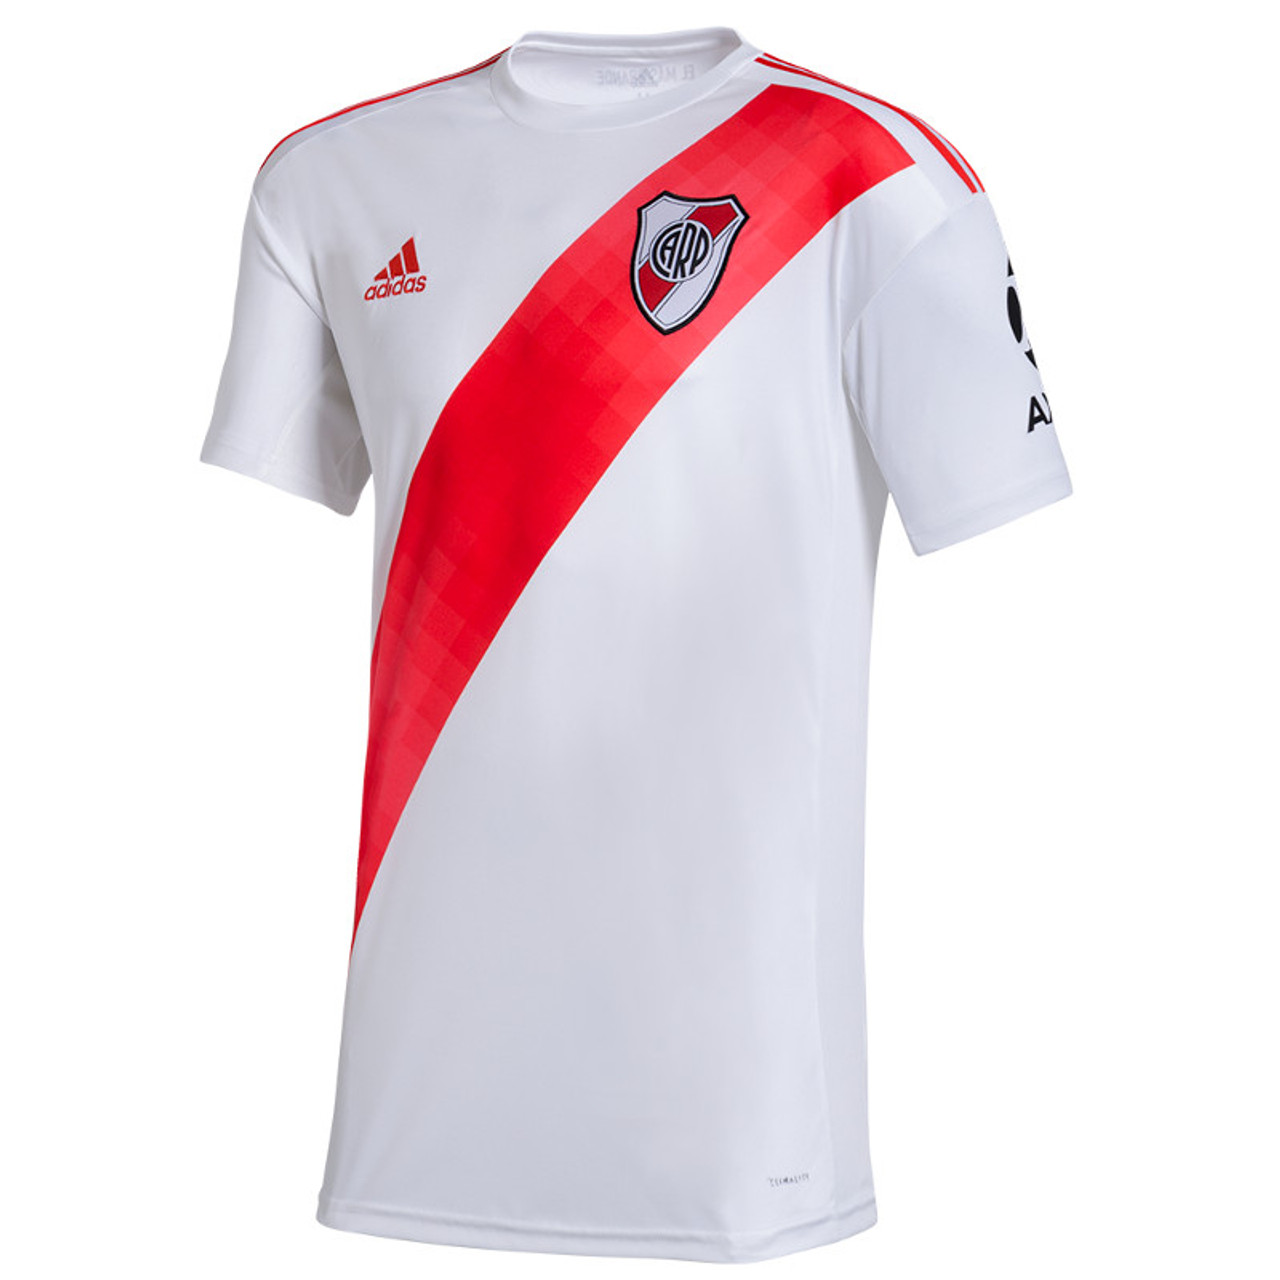 uk availability ec552 4c43c River Plate Official Soccer Men's Camiseta Jersey, 2019